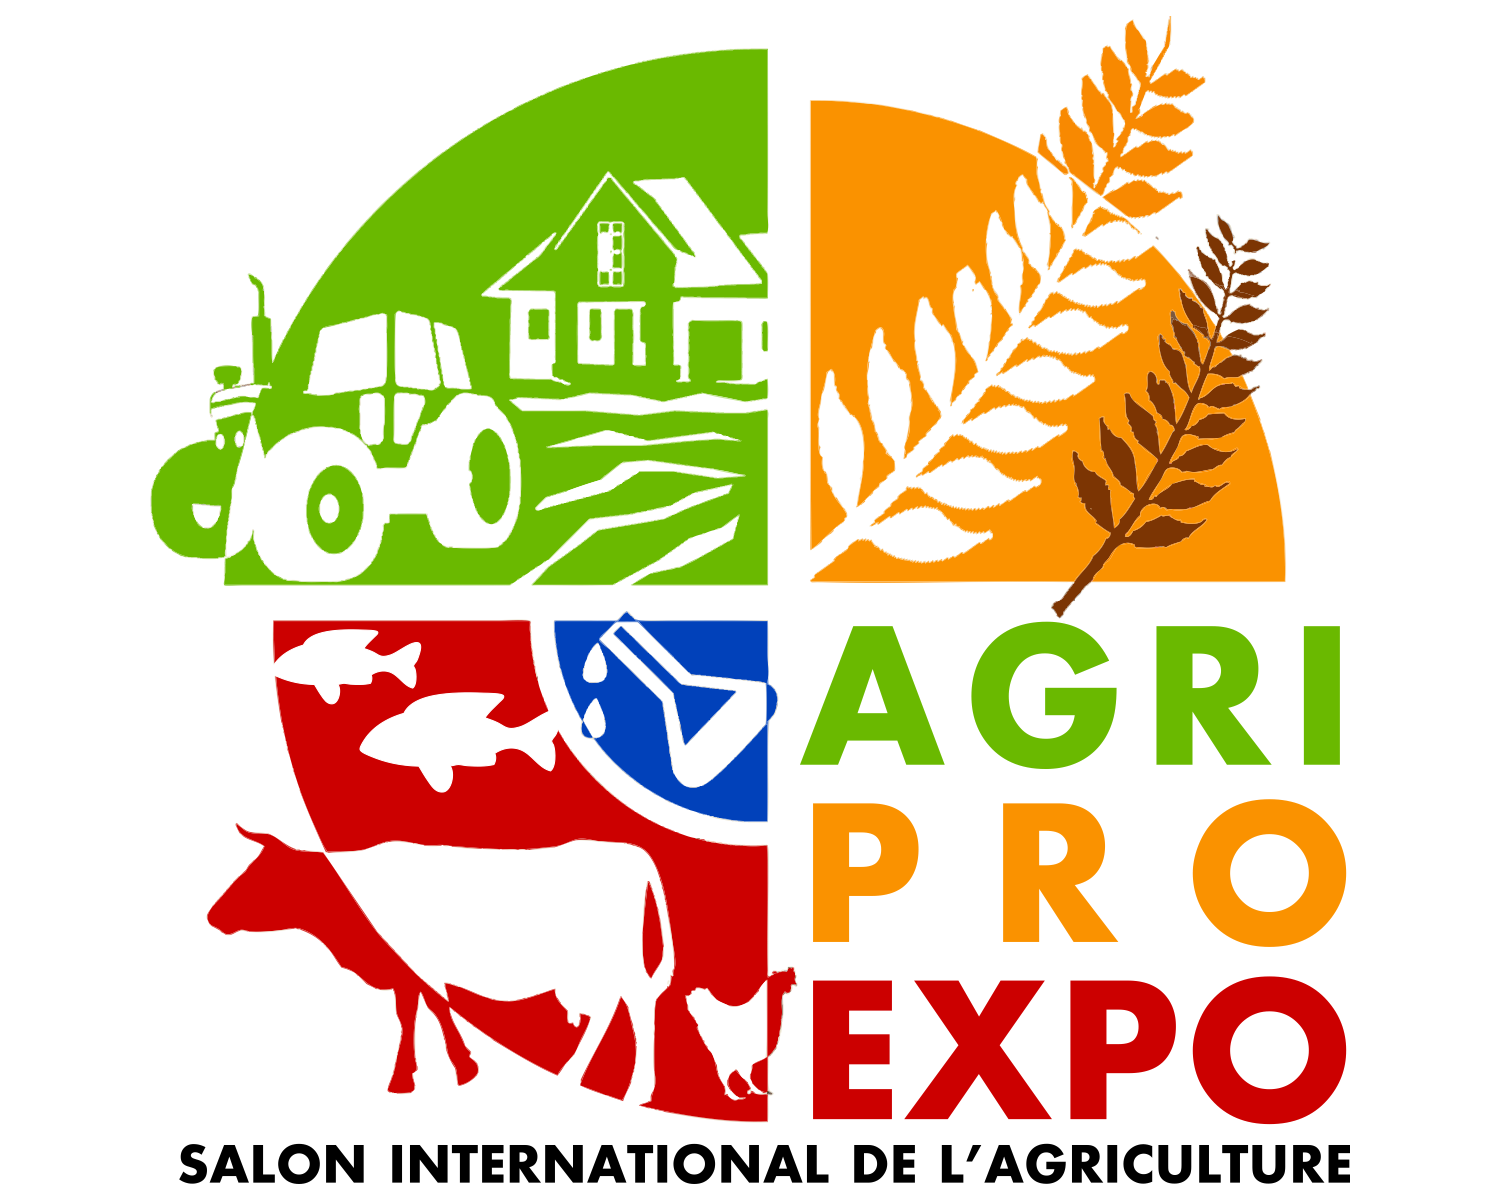 Agripro-Expo. Salon international de l'agriculture d'Oran @ Centre convention d'Oran. Hotel Méridien | Illinois | États-Unis